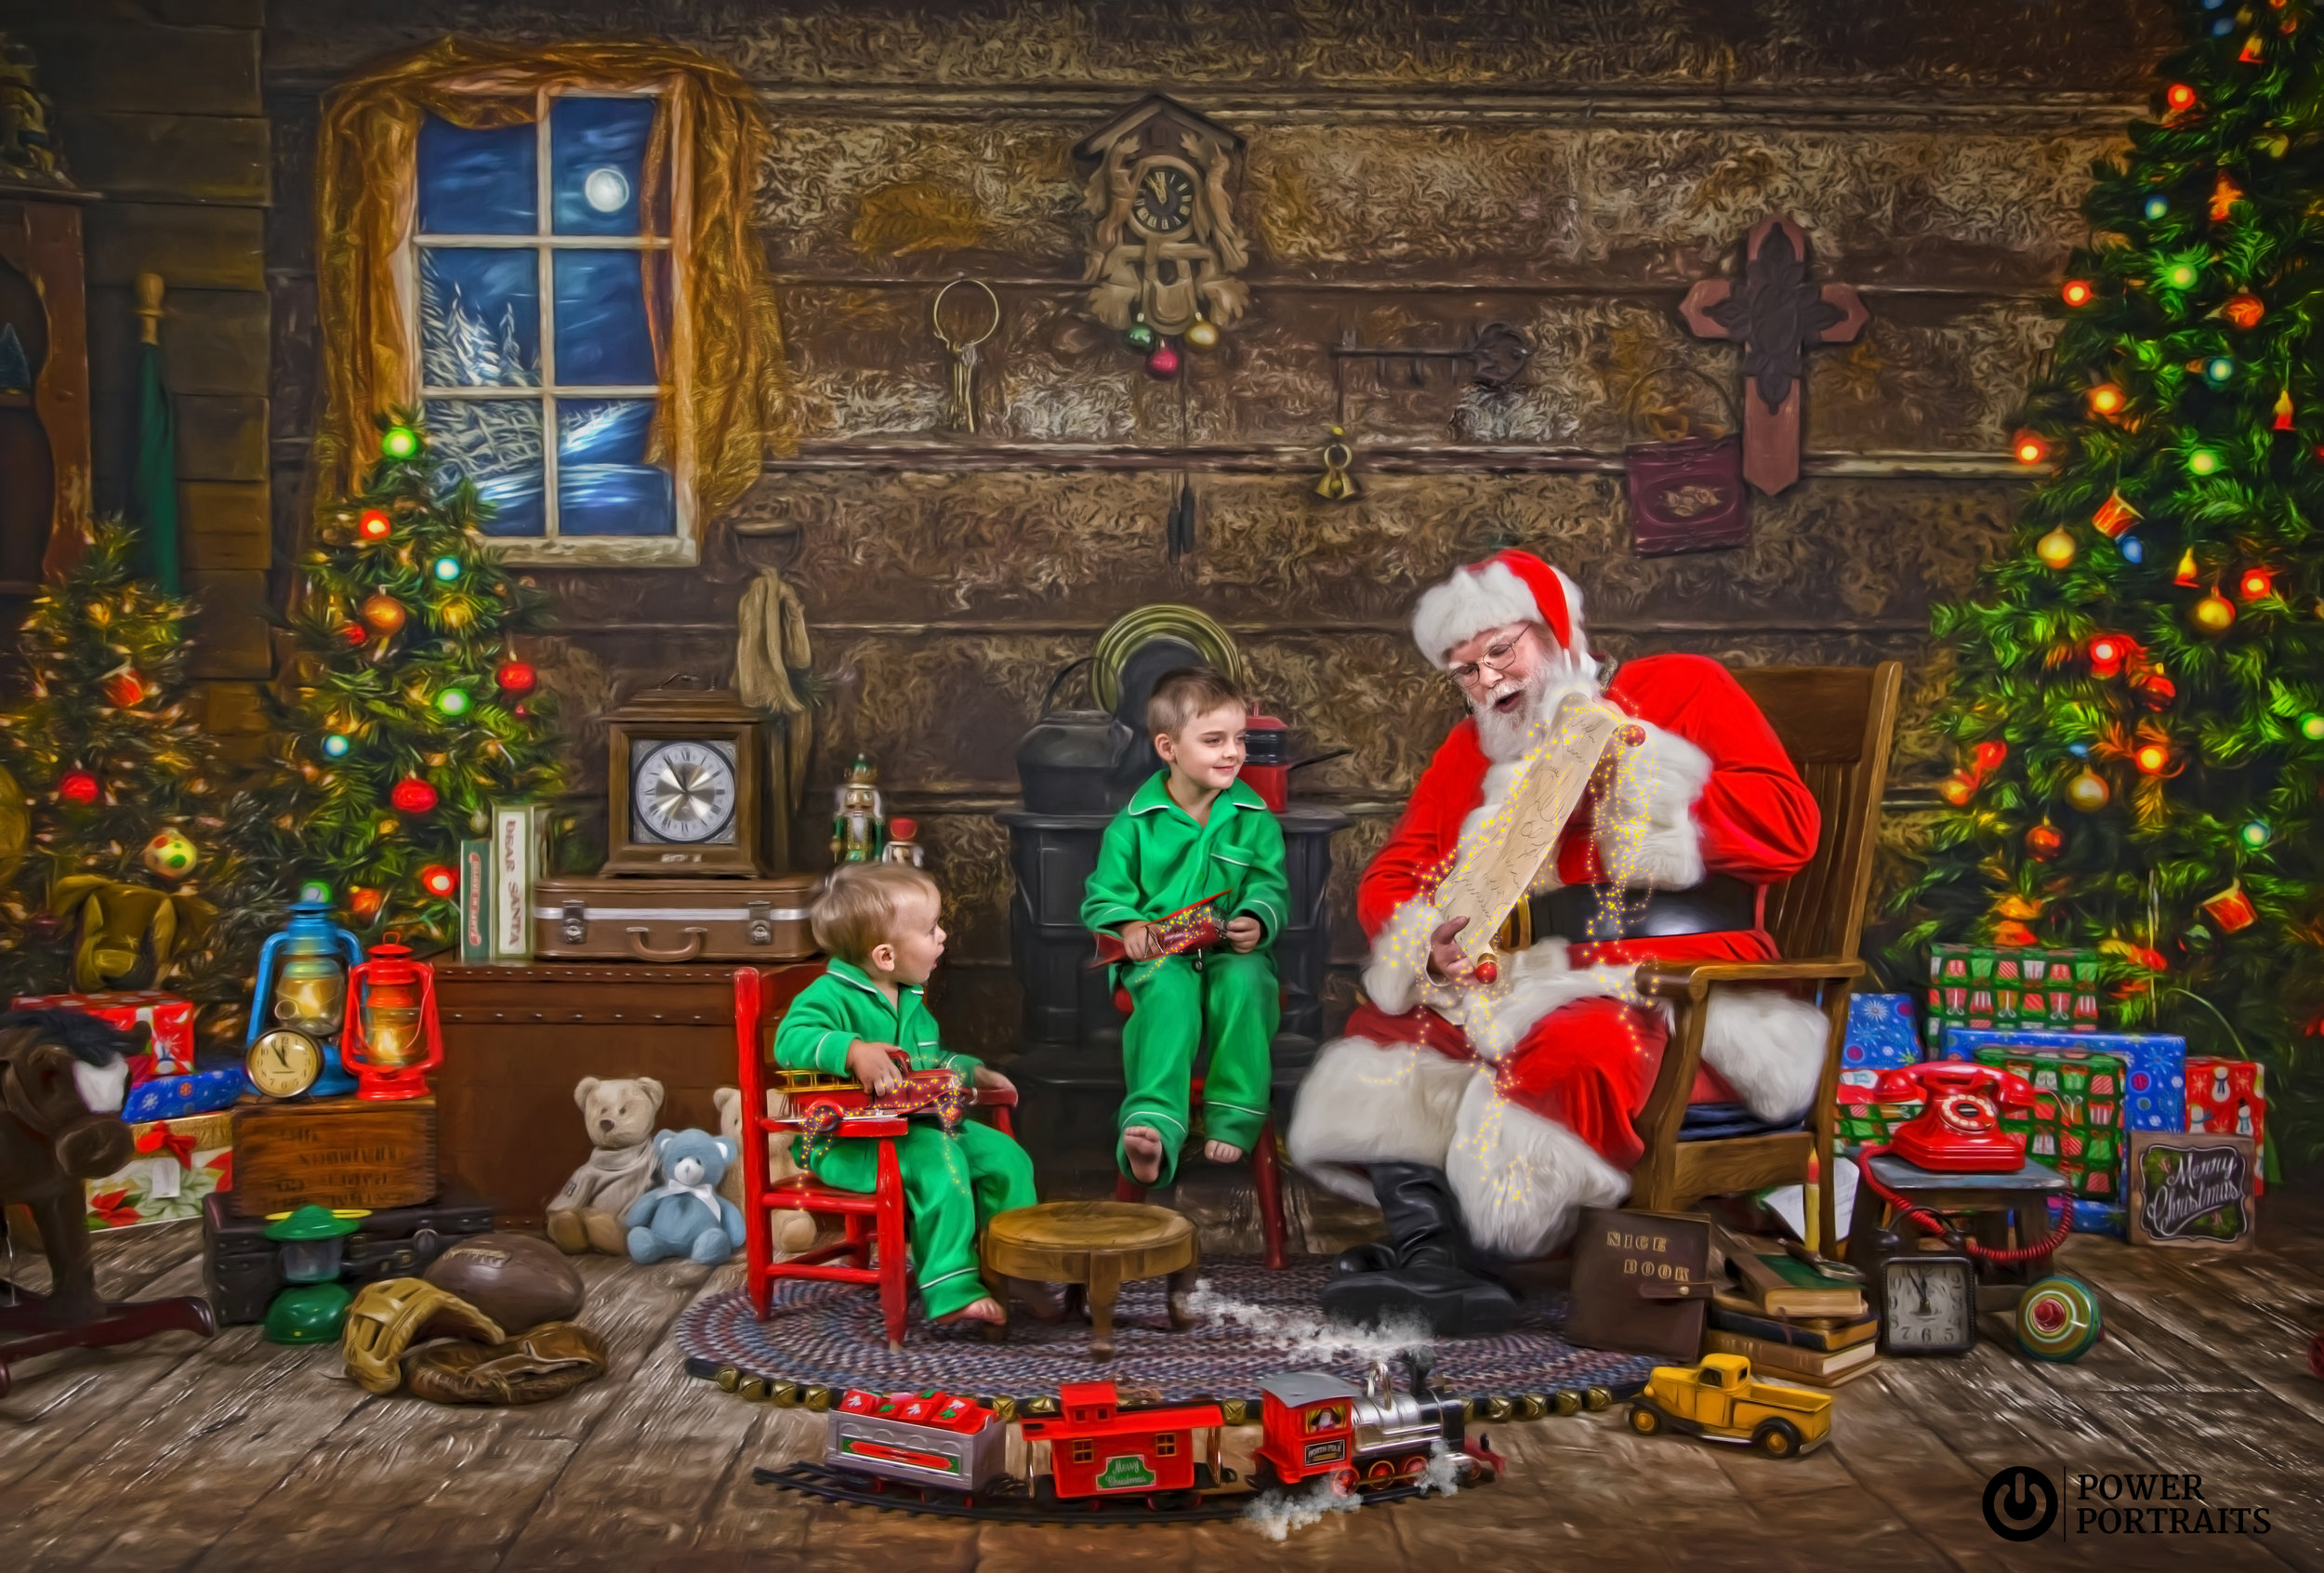 Santa's Storybook Workshop - Santa reviews his toy list